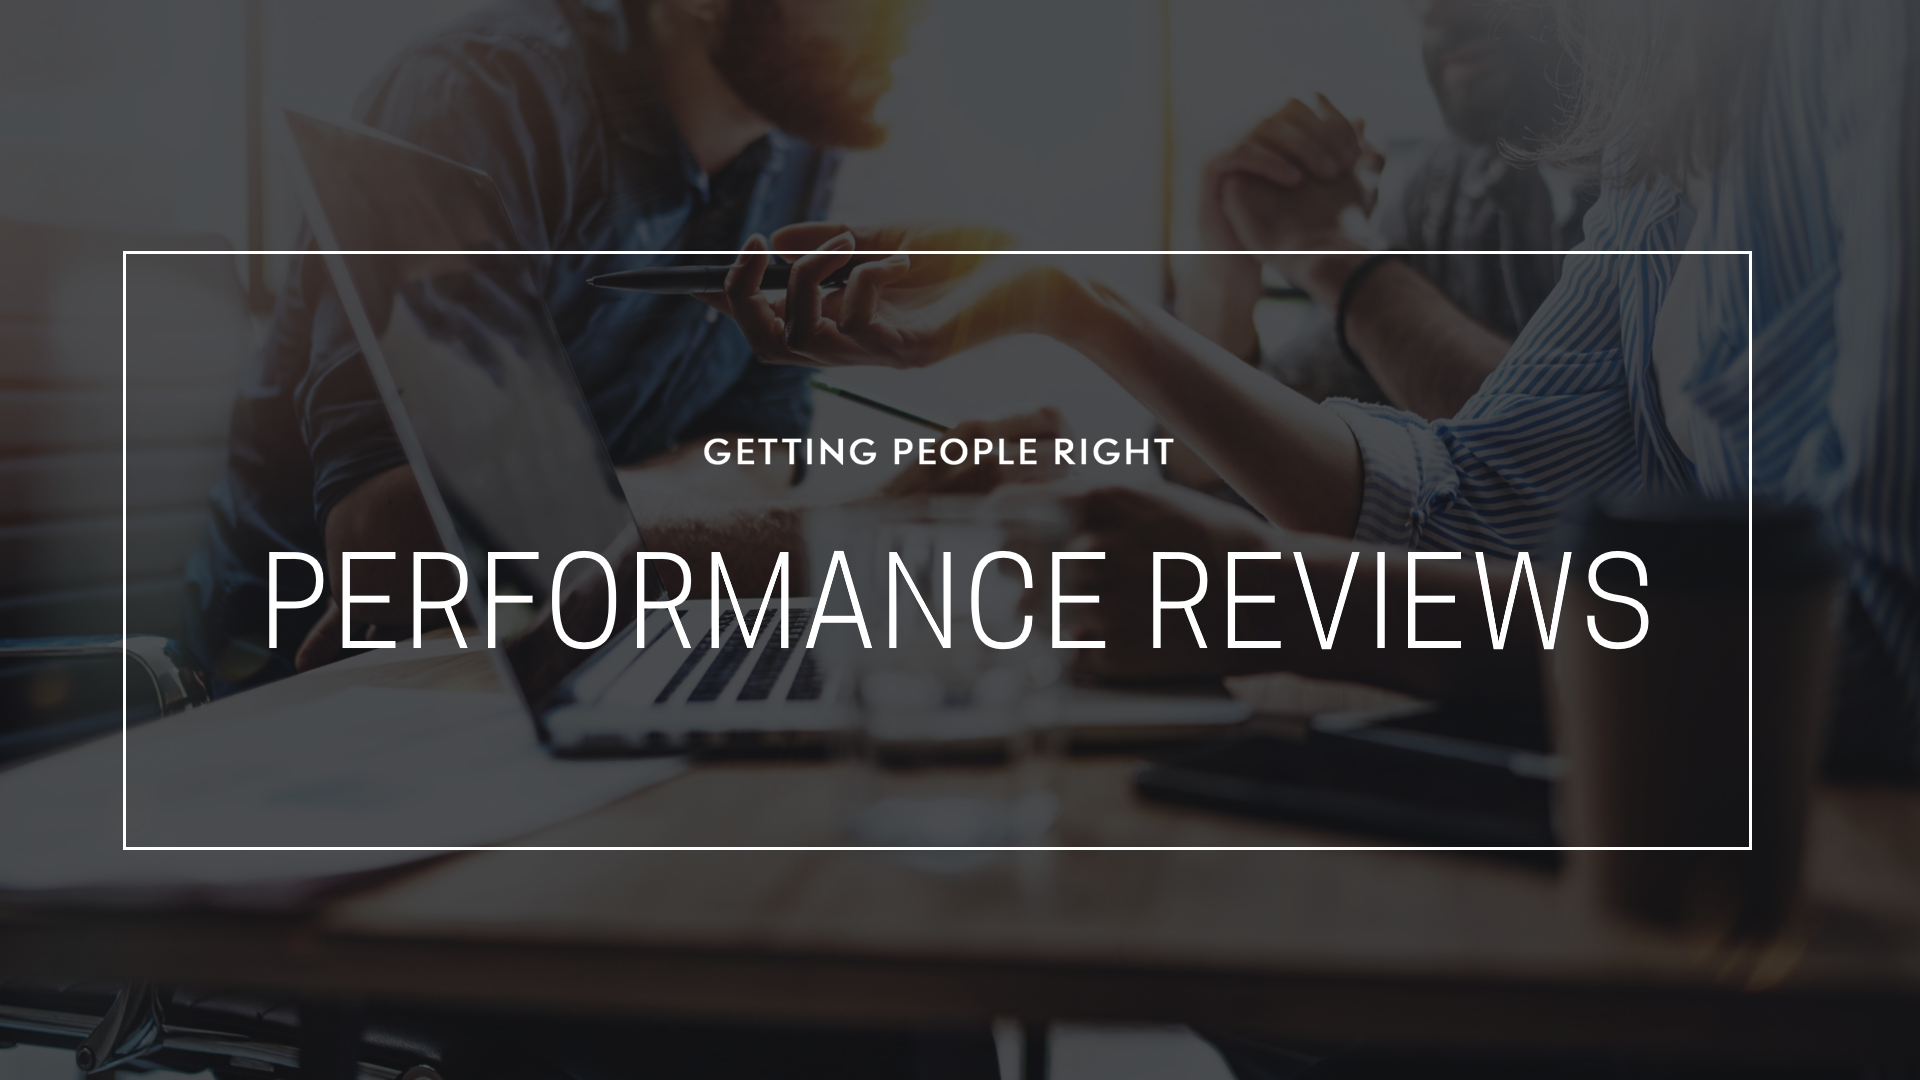 108 - Performance Reviews